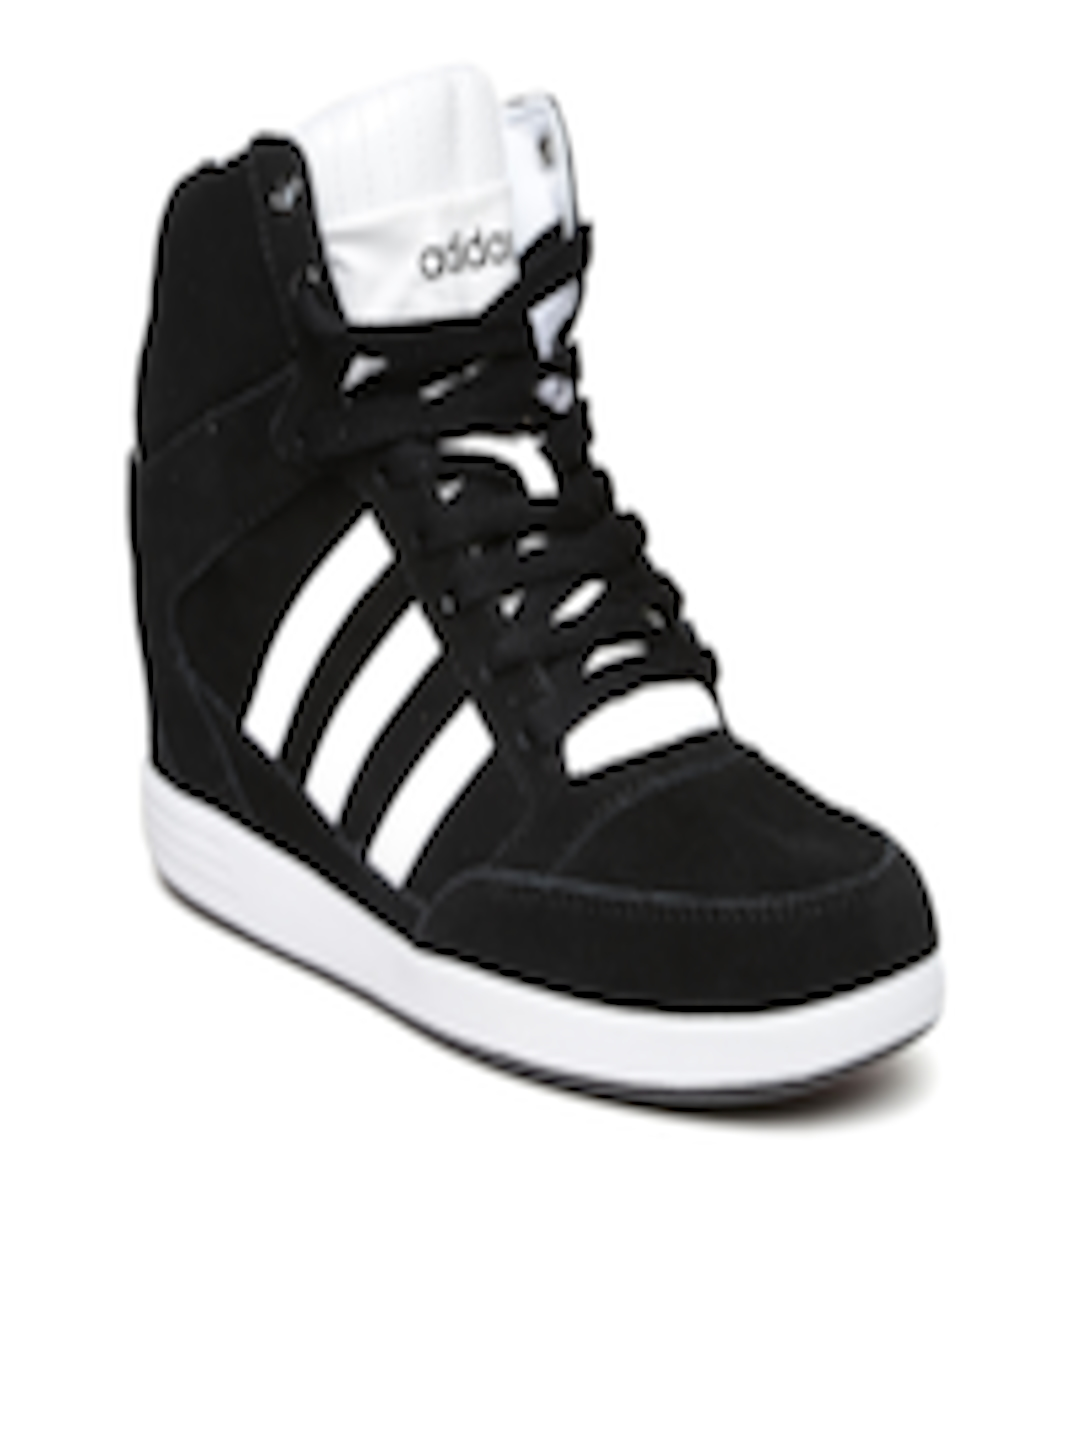 ADIDAS SUPER WEDGE W black white women's suede high top sneakers wedges NEW